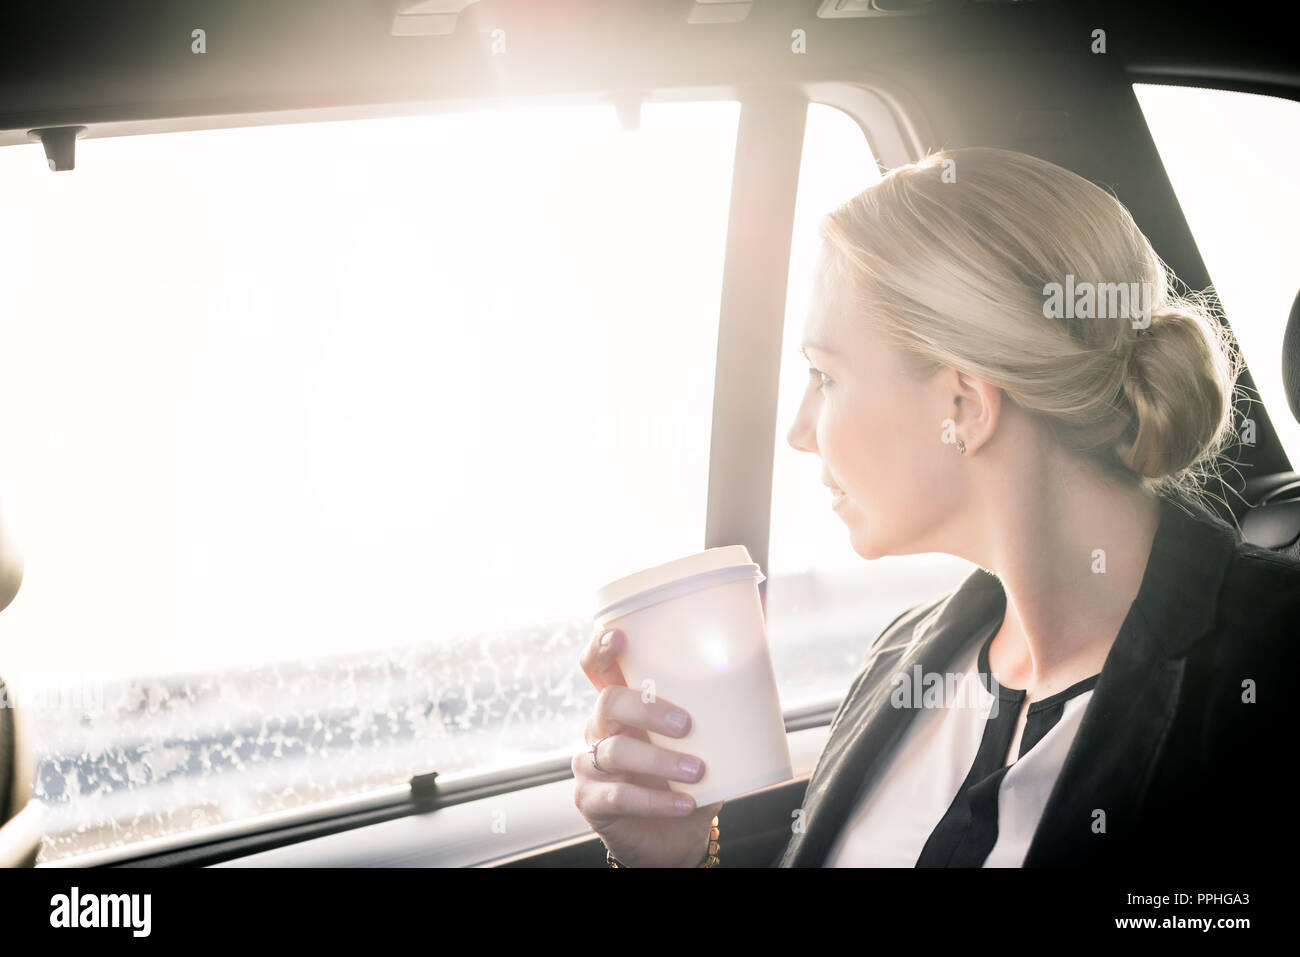 Businesswoman holding takeaway coffee cup in car - Stock Image